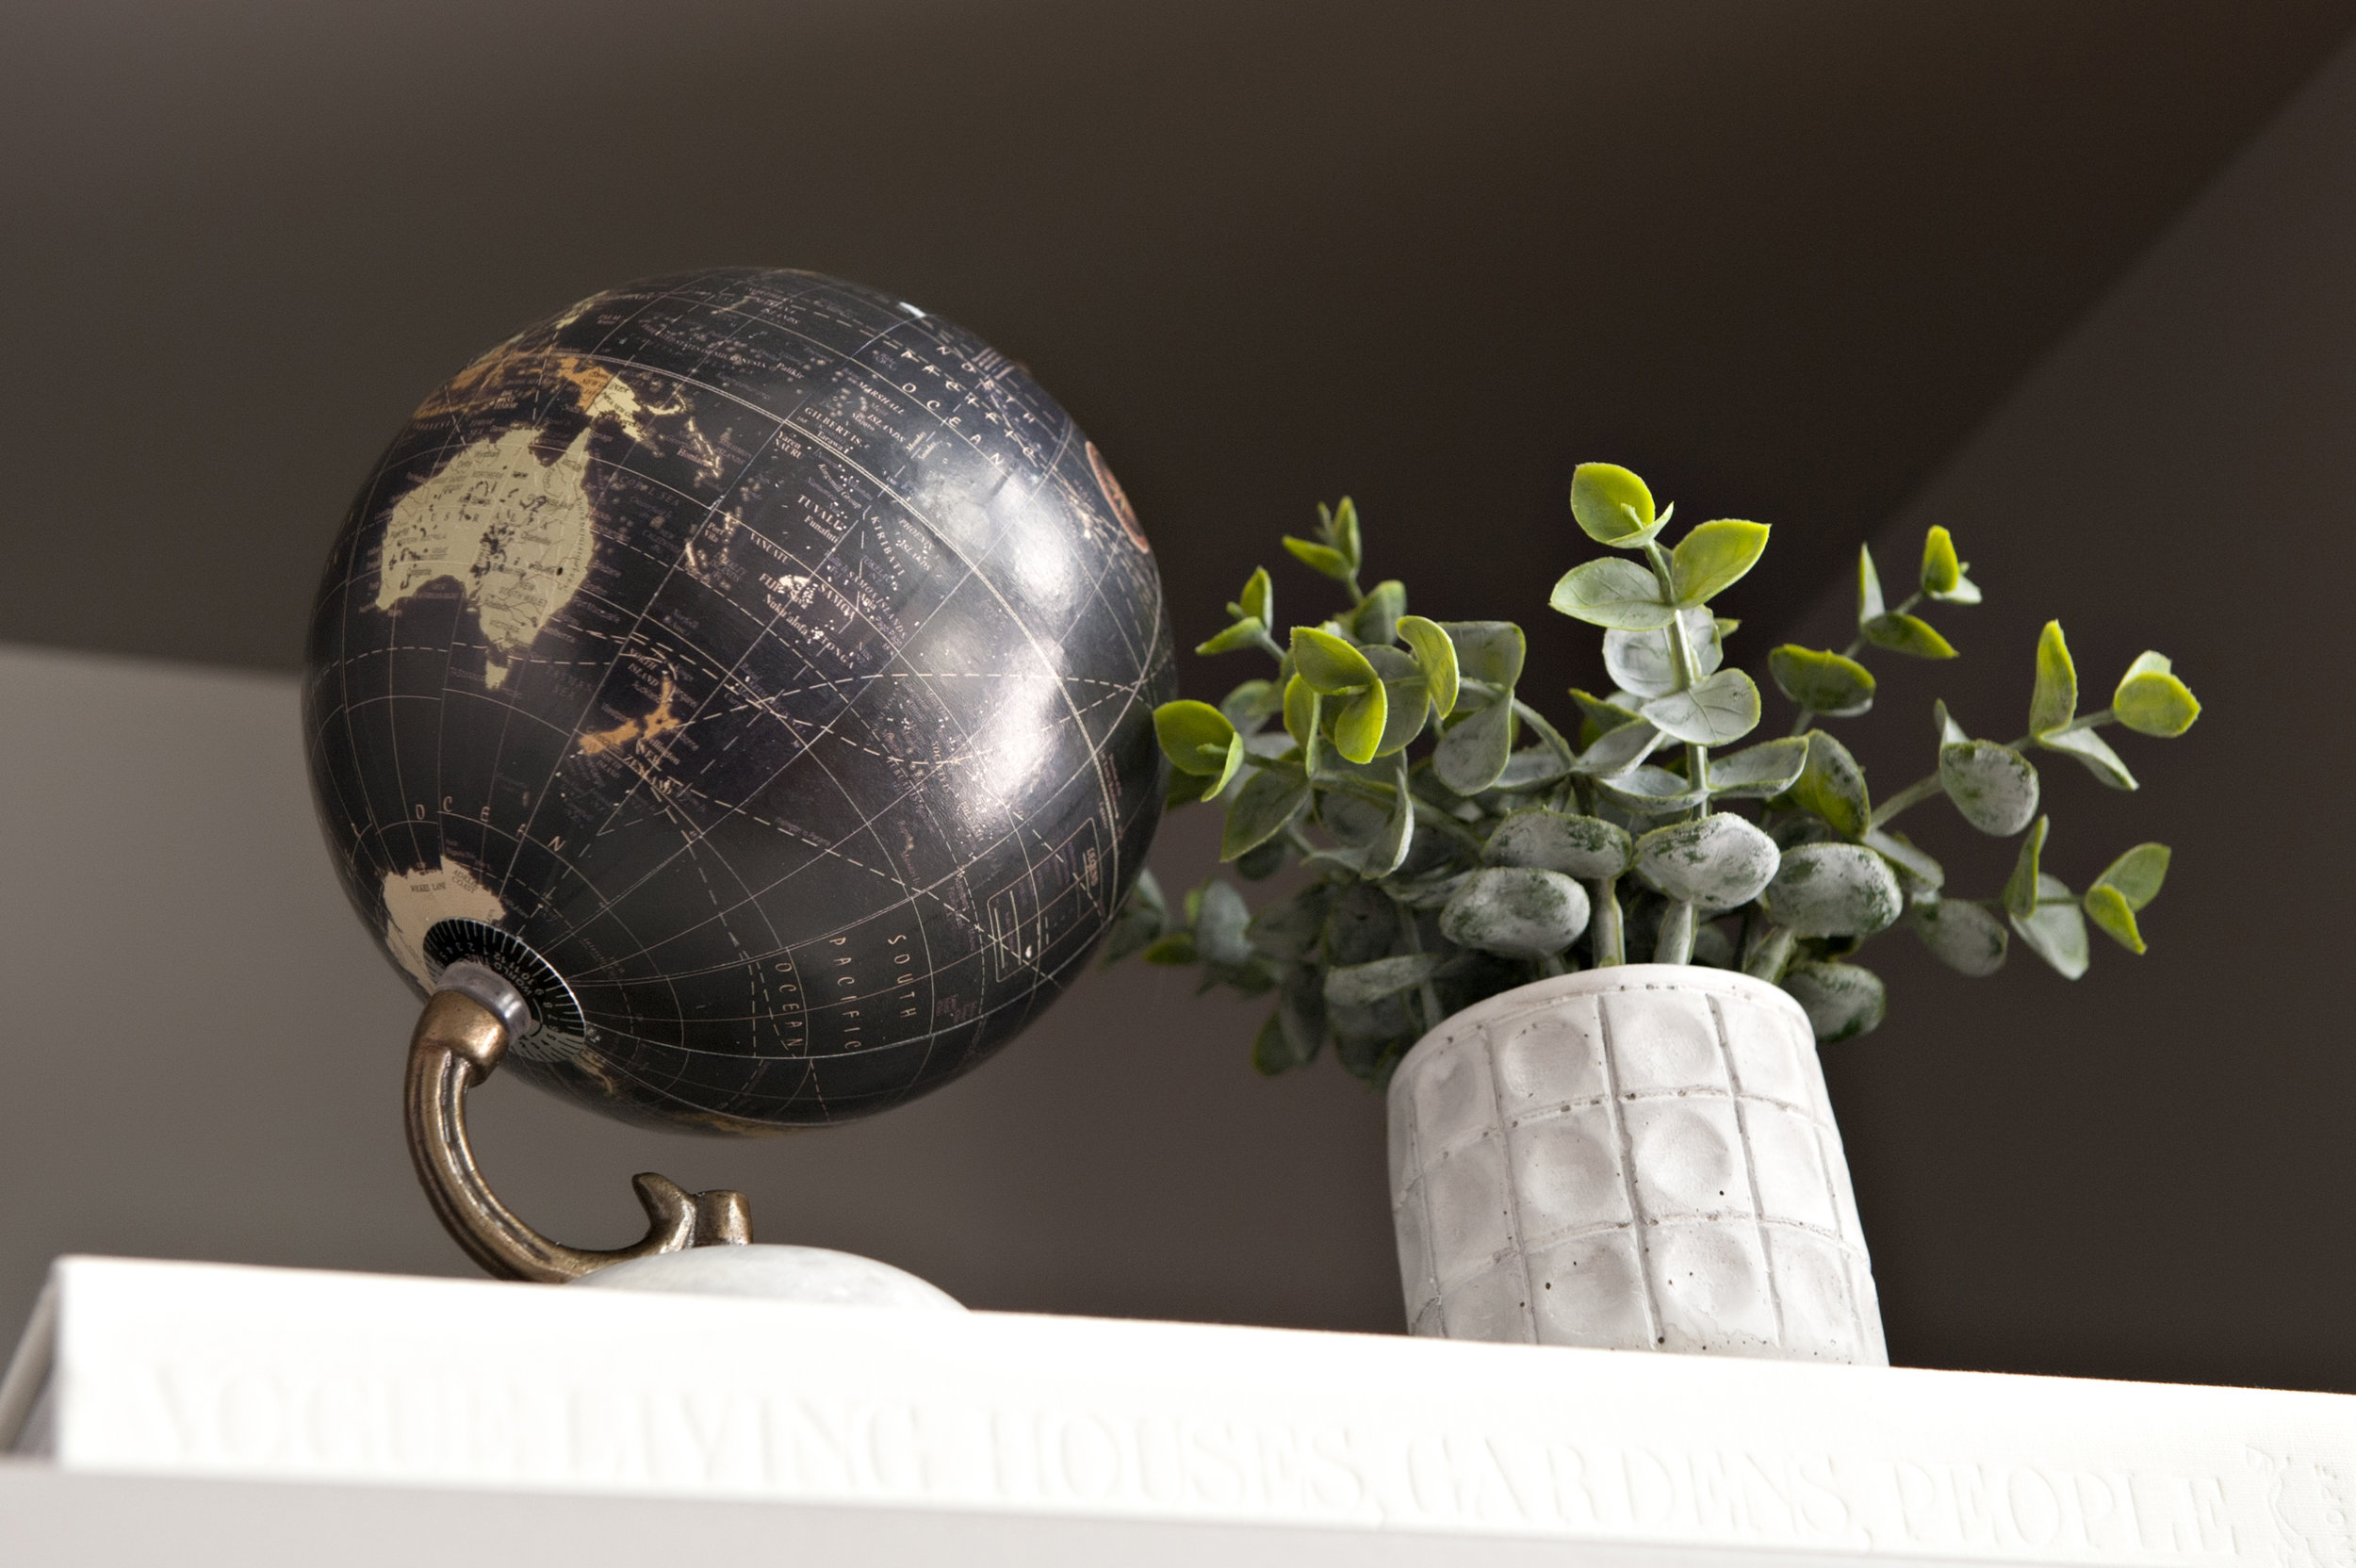 Interior-Design-River-Rd-Decor-Globe